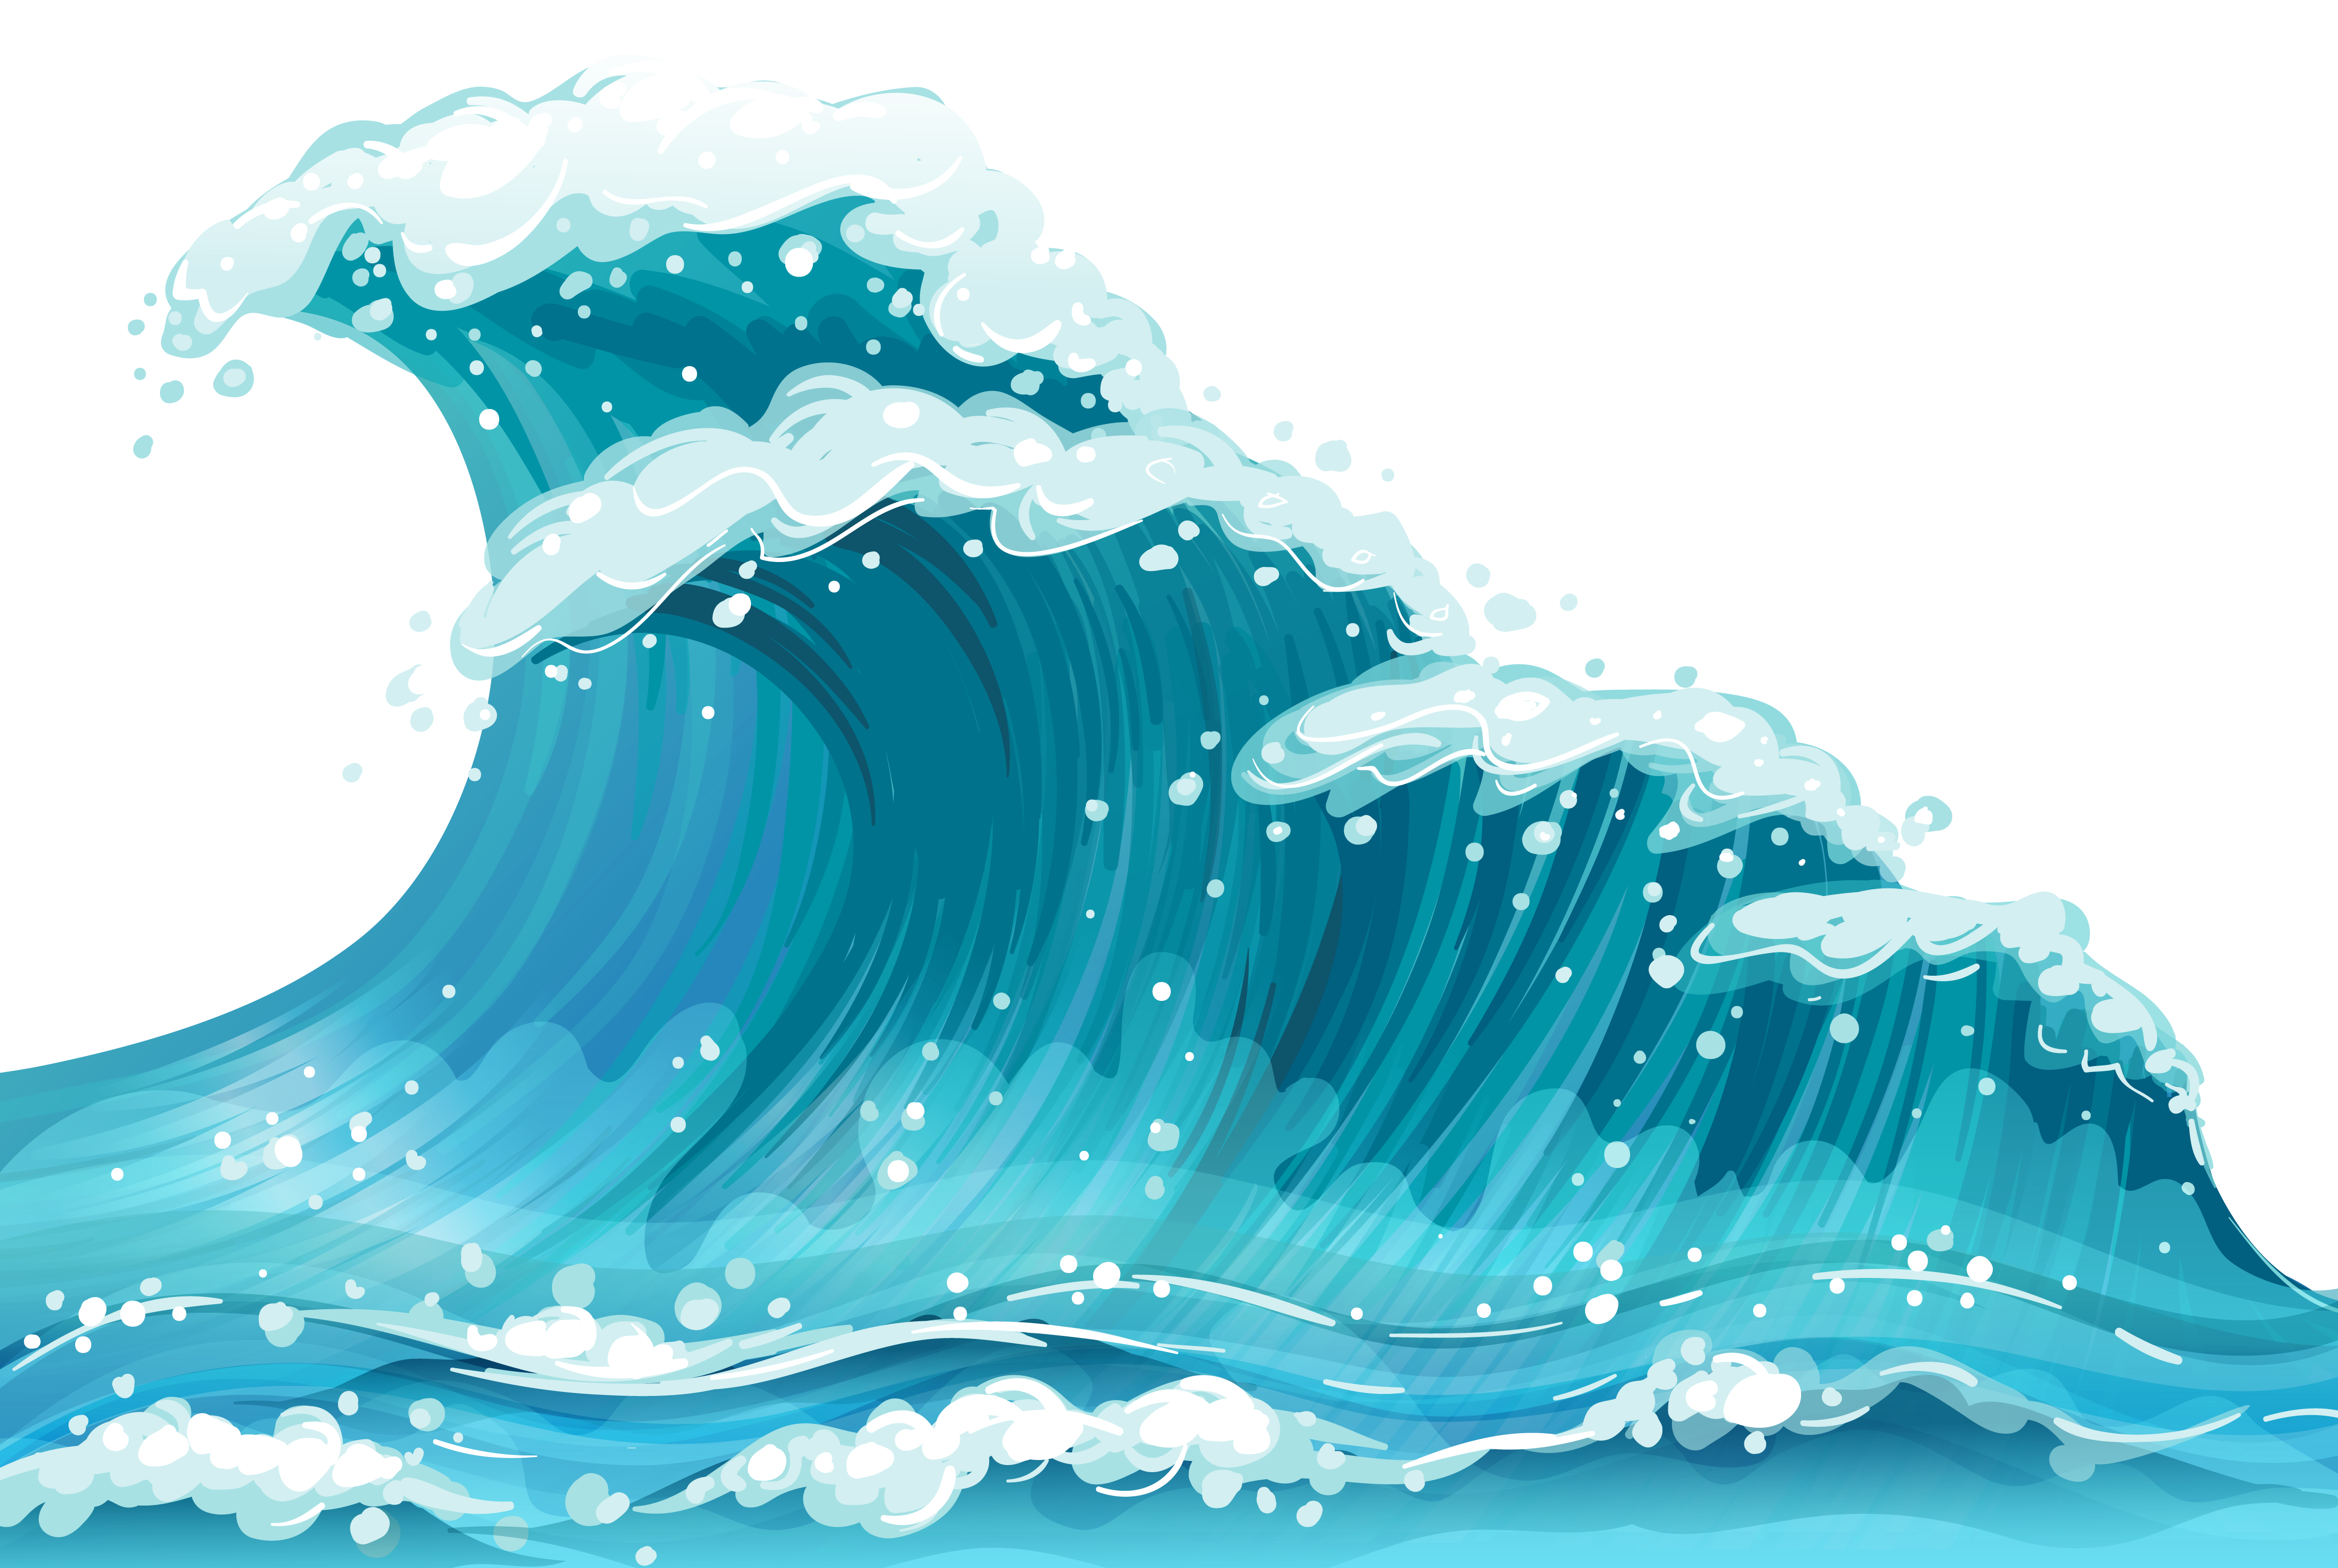 wave clipart gclipart com 1 waves power pinterest sea waves rh pinterest co uk waves clipart border waves clipart free